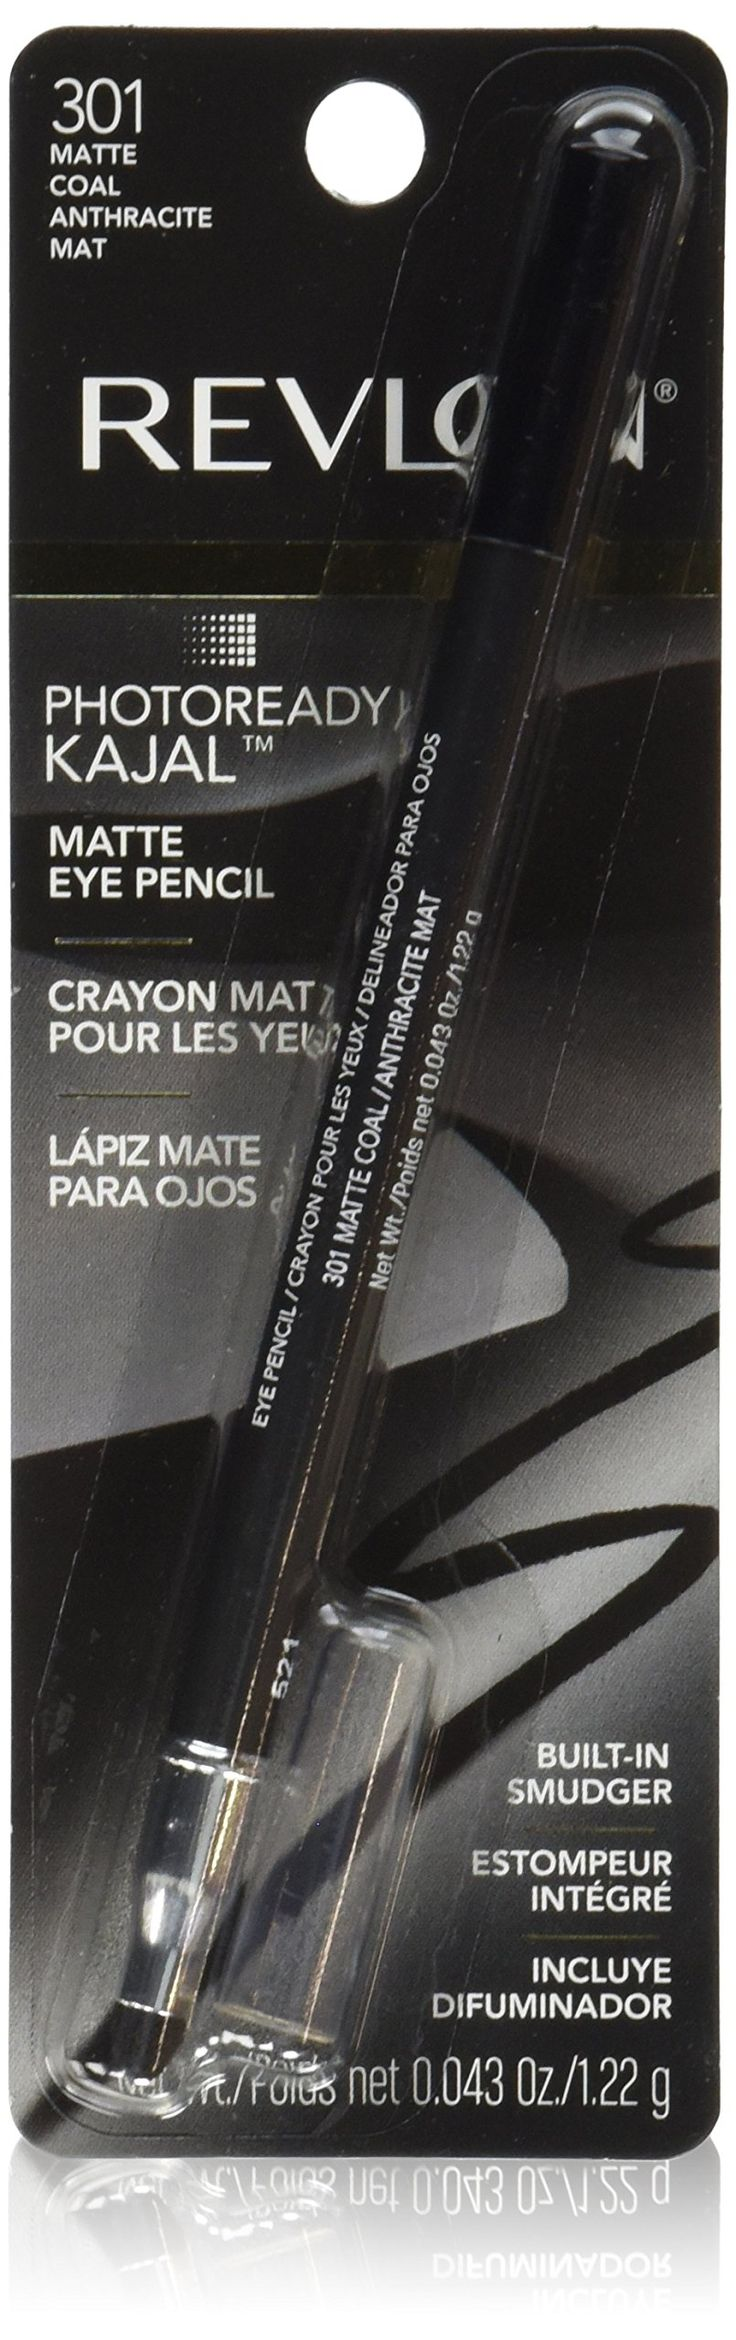 Revlon PhotoReady Kajal Eye Pencil, Matte Coal. Soft kajal in bold colors and matte finis. Soft enough to line the inner rim, matte enough for all day wear. Use with built in smudger to go from precise to smoky. Ophthalmologist tested. Available in 4 shades.